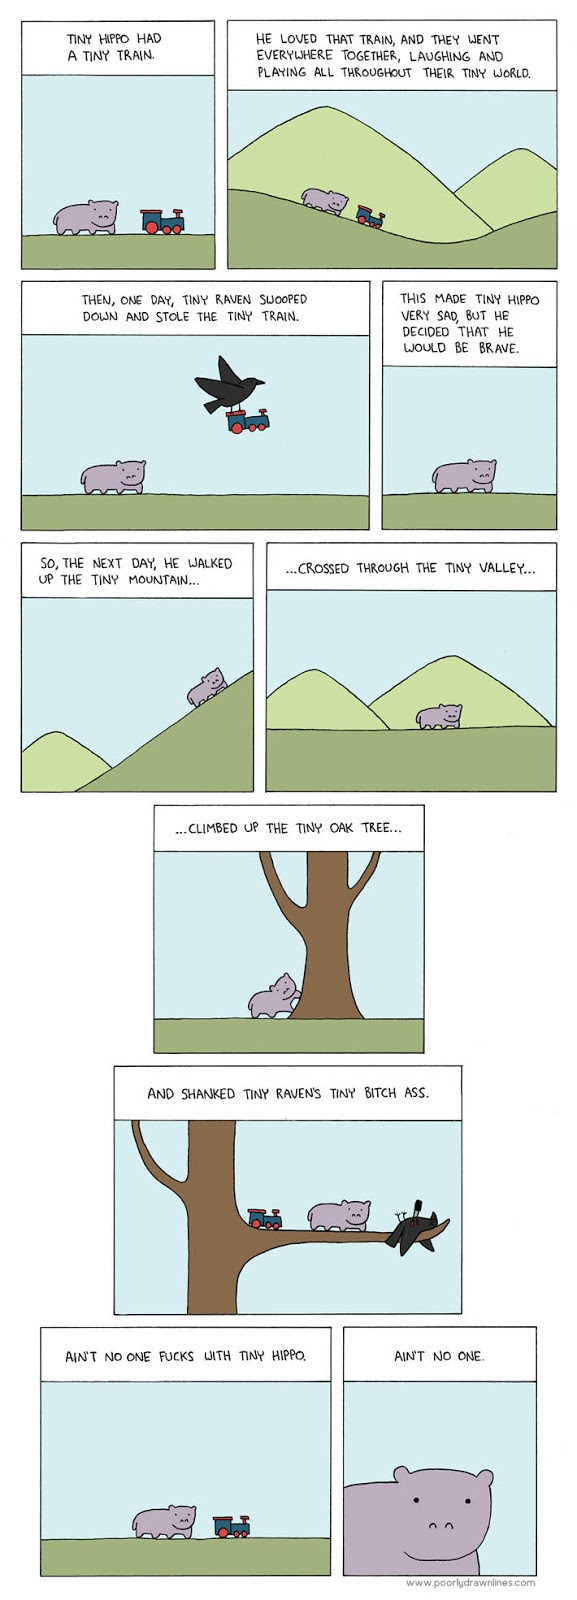 Funny comic depicting an evil small Hippo